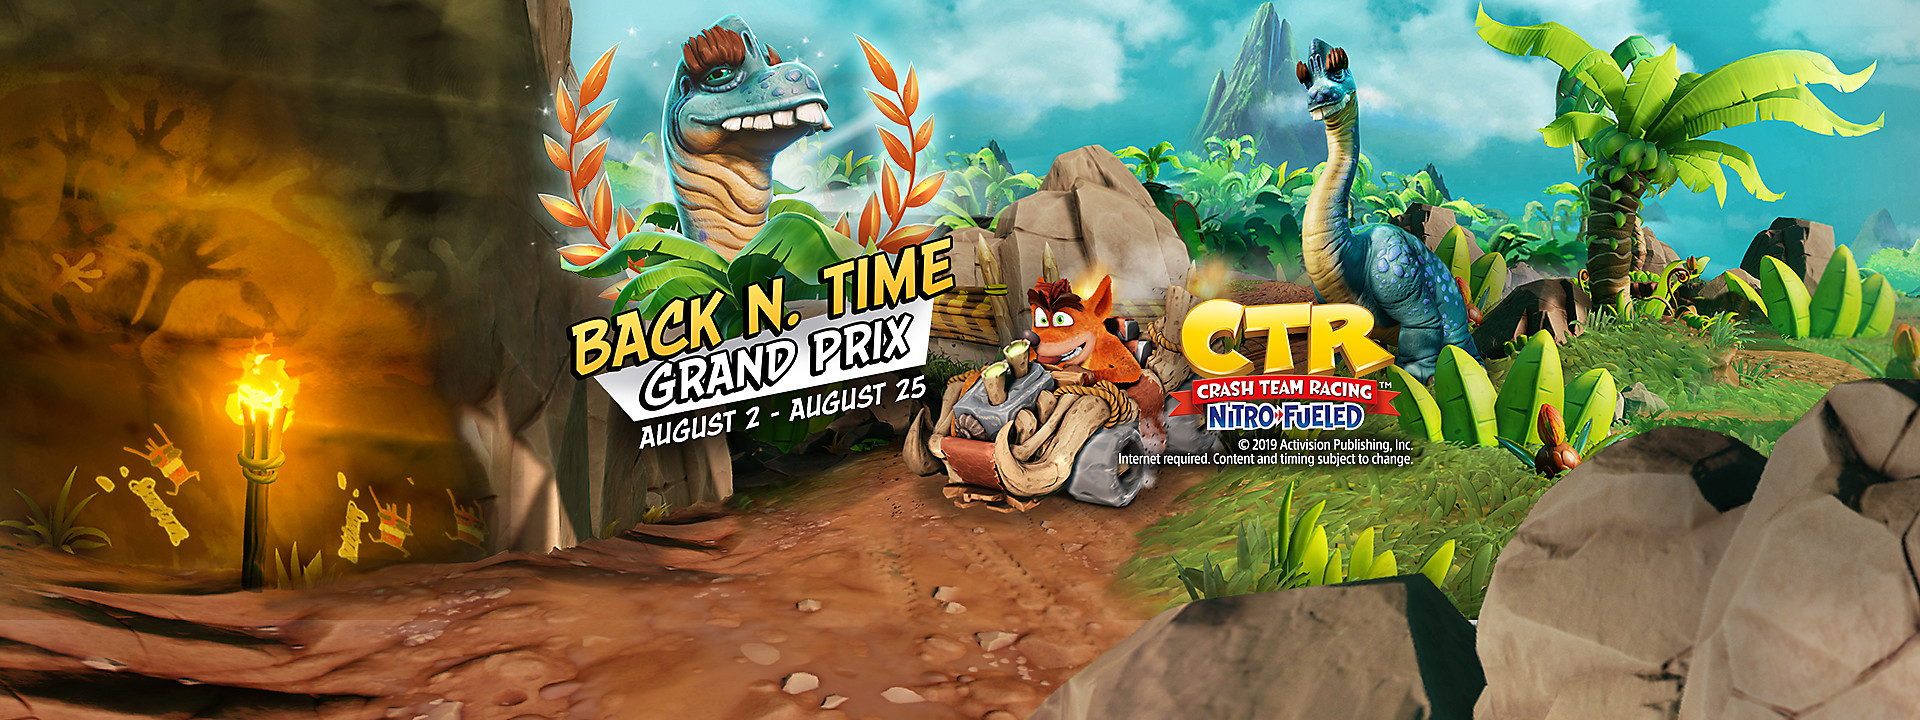 Crash Team Racing Nitro-Fueled - Back N. Time Grand Prix